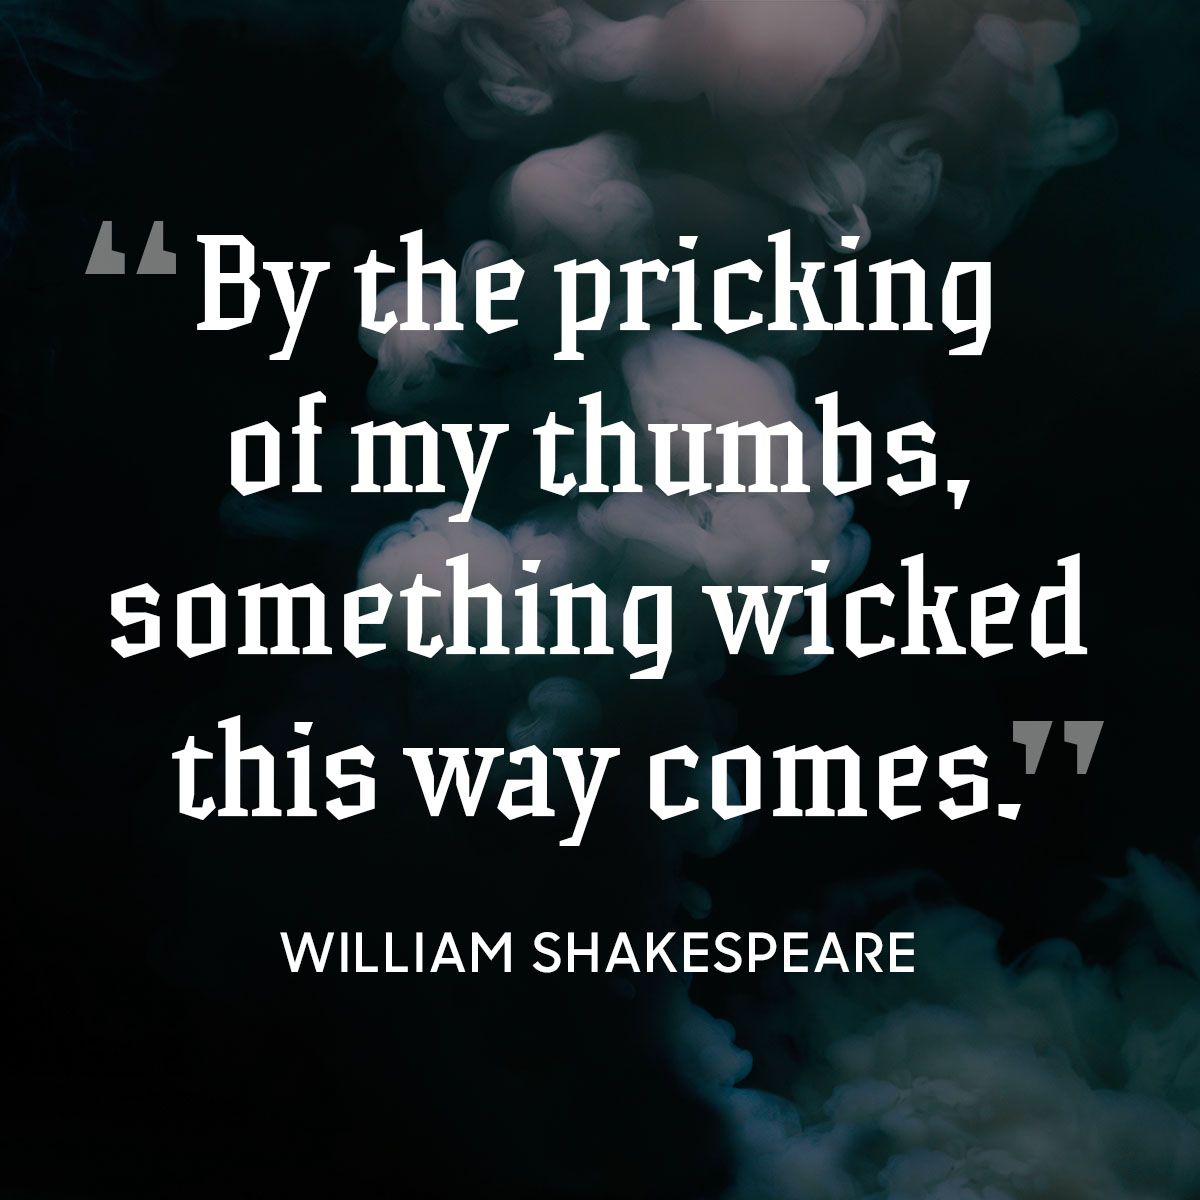 20 super spooky halloween quotes - Scary Halloween Quotes And Sayings